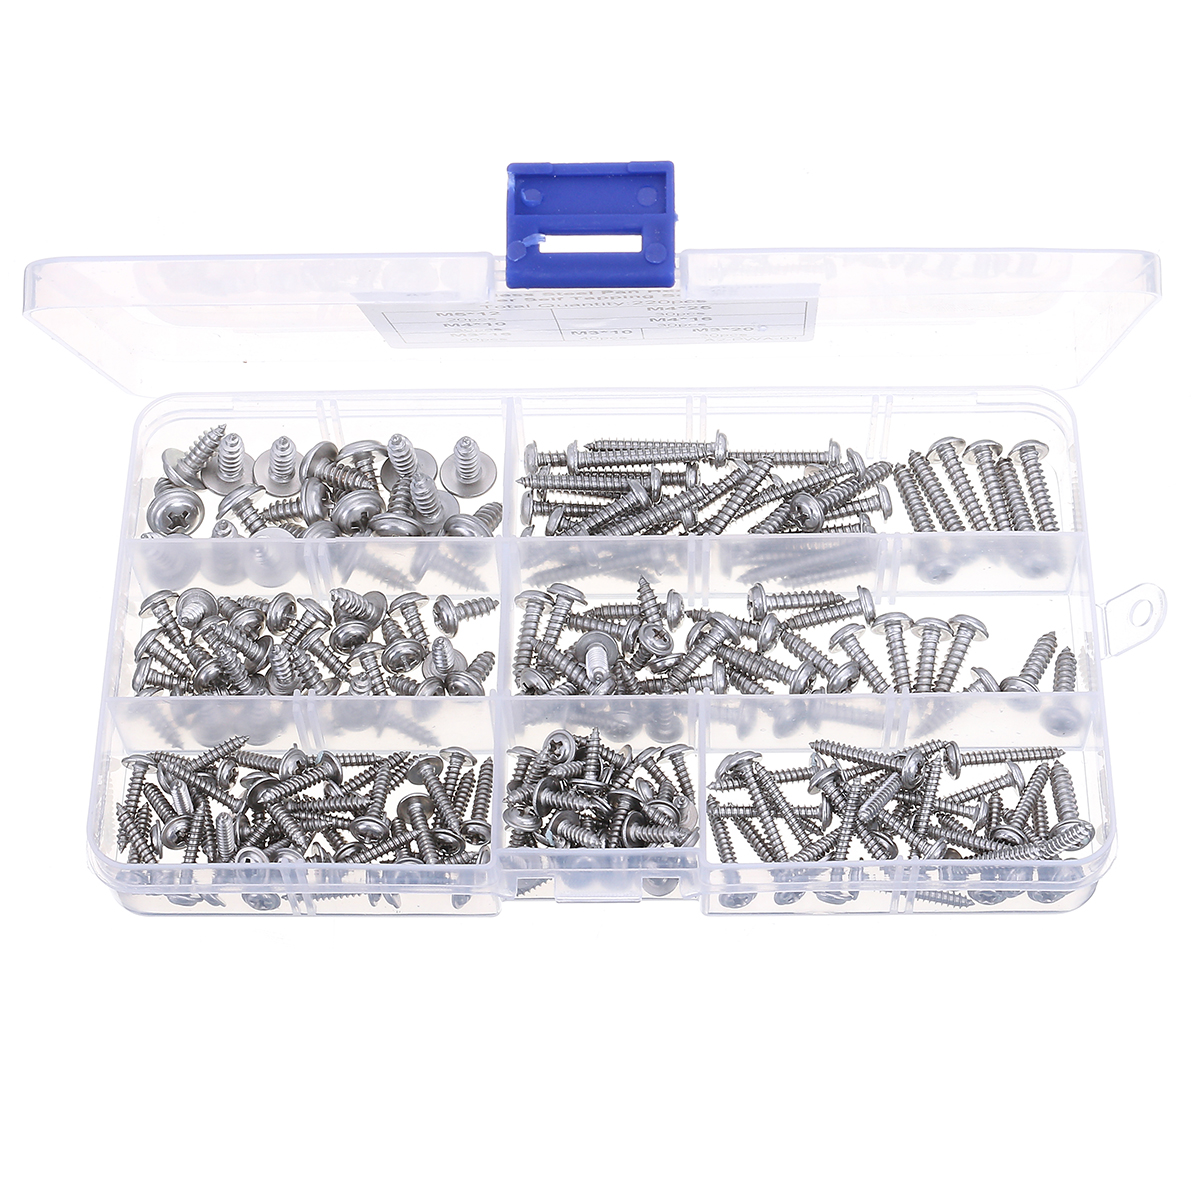 Suleve™ MXSP5 220pcs M3/M4/M5 Stainless Steel 304 Pan Head Phillip Trapper Self Trapping Screw